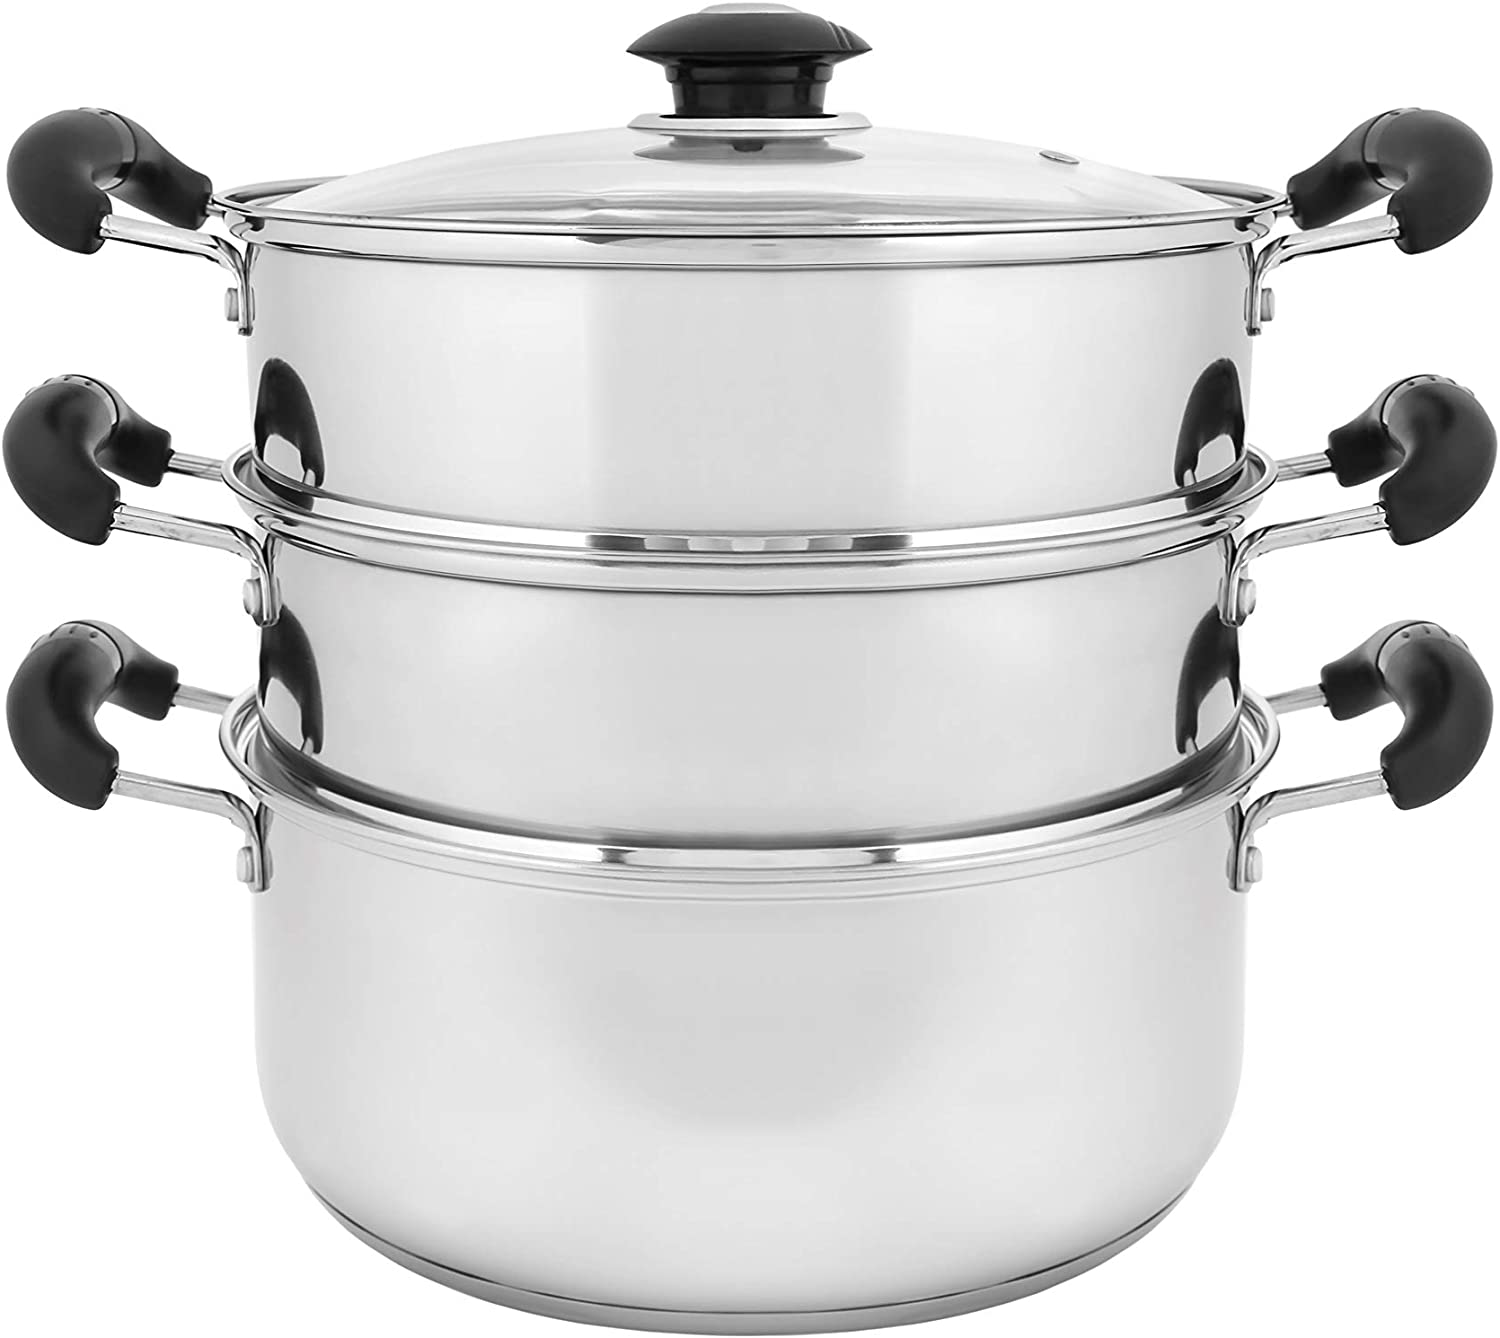 "CONCORD 10"" Stainless Steel 3 Tier Steamer Steaming Pot Cookware 24 CM (Induction Compatible)"